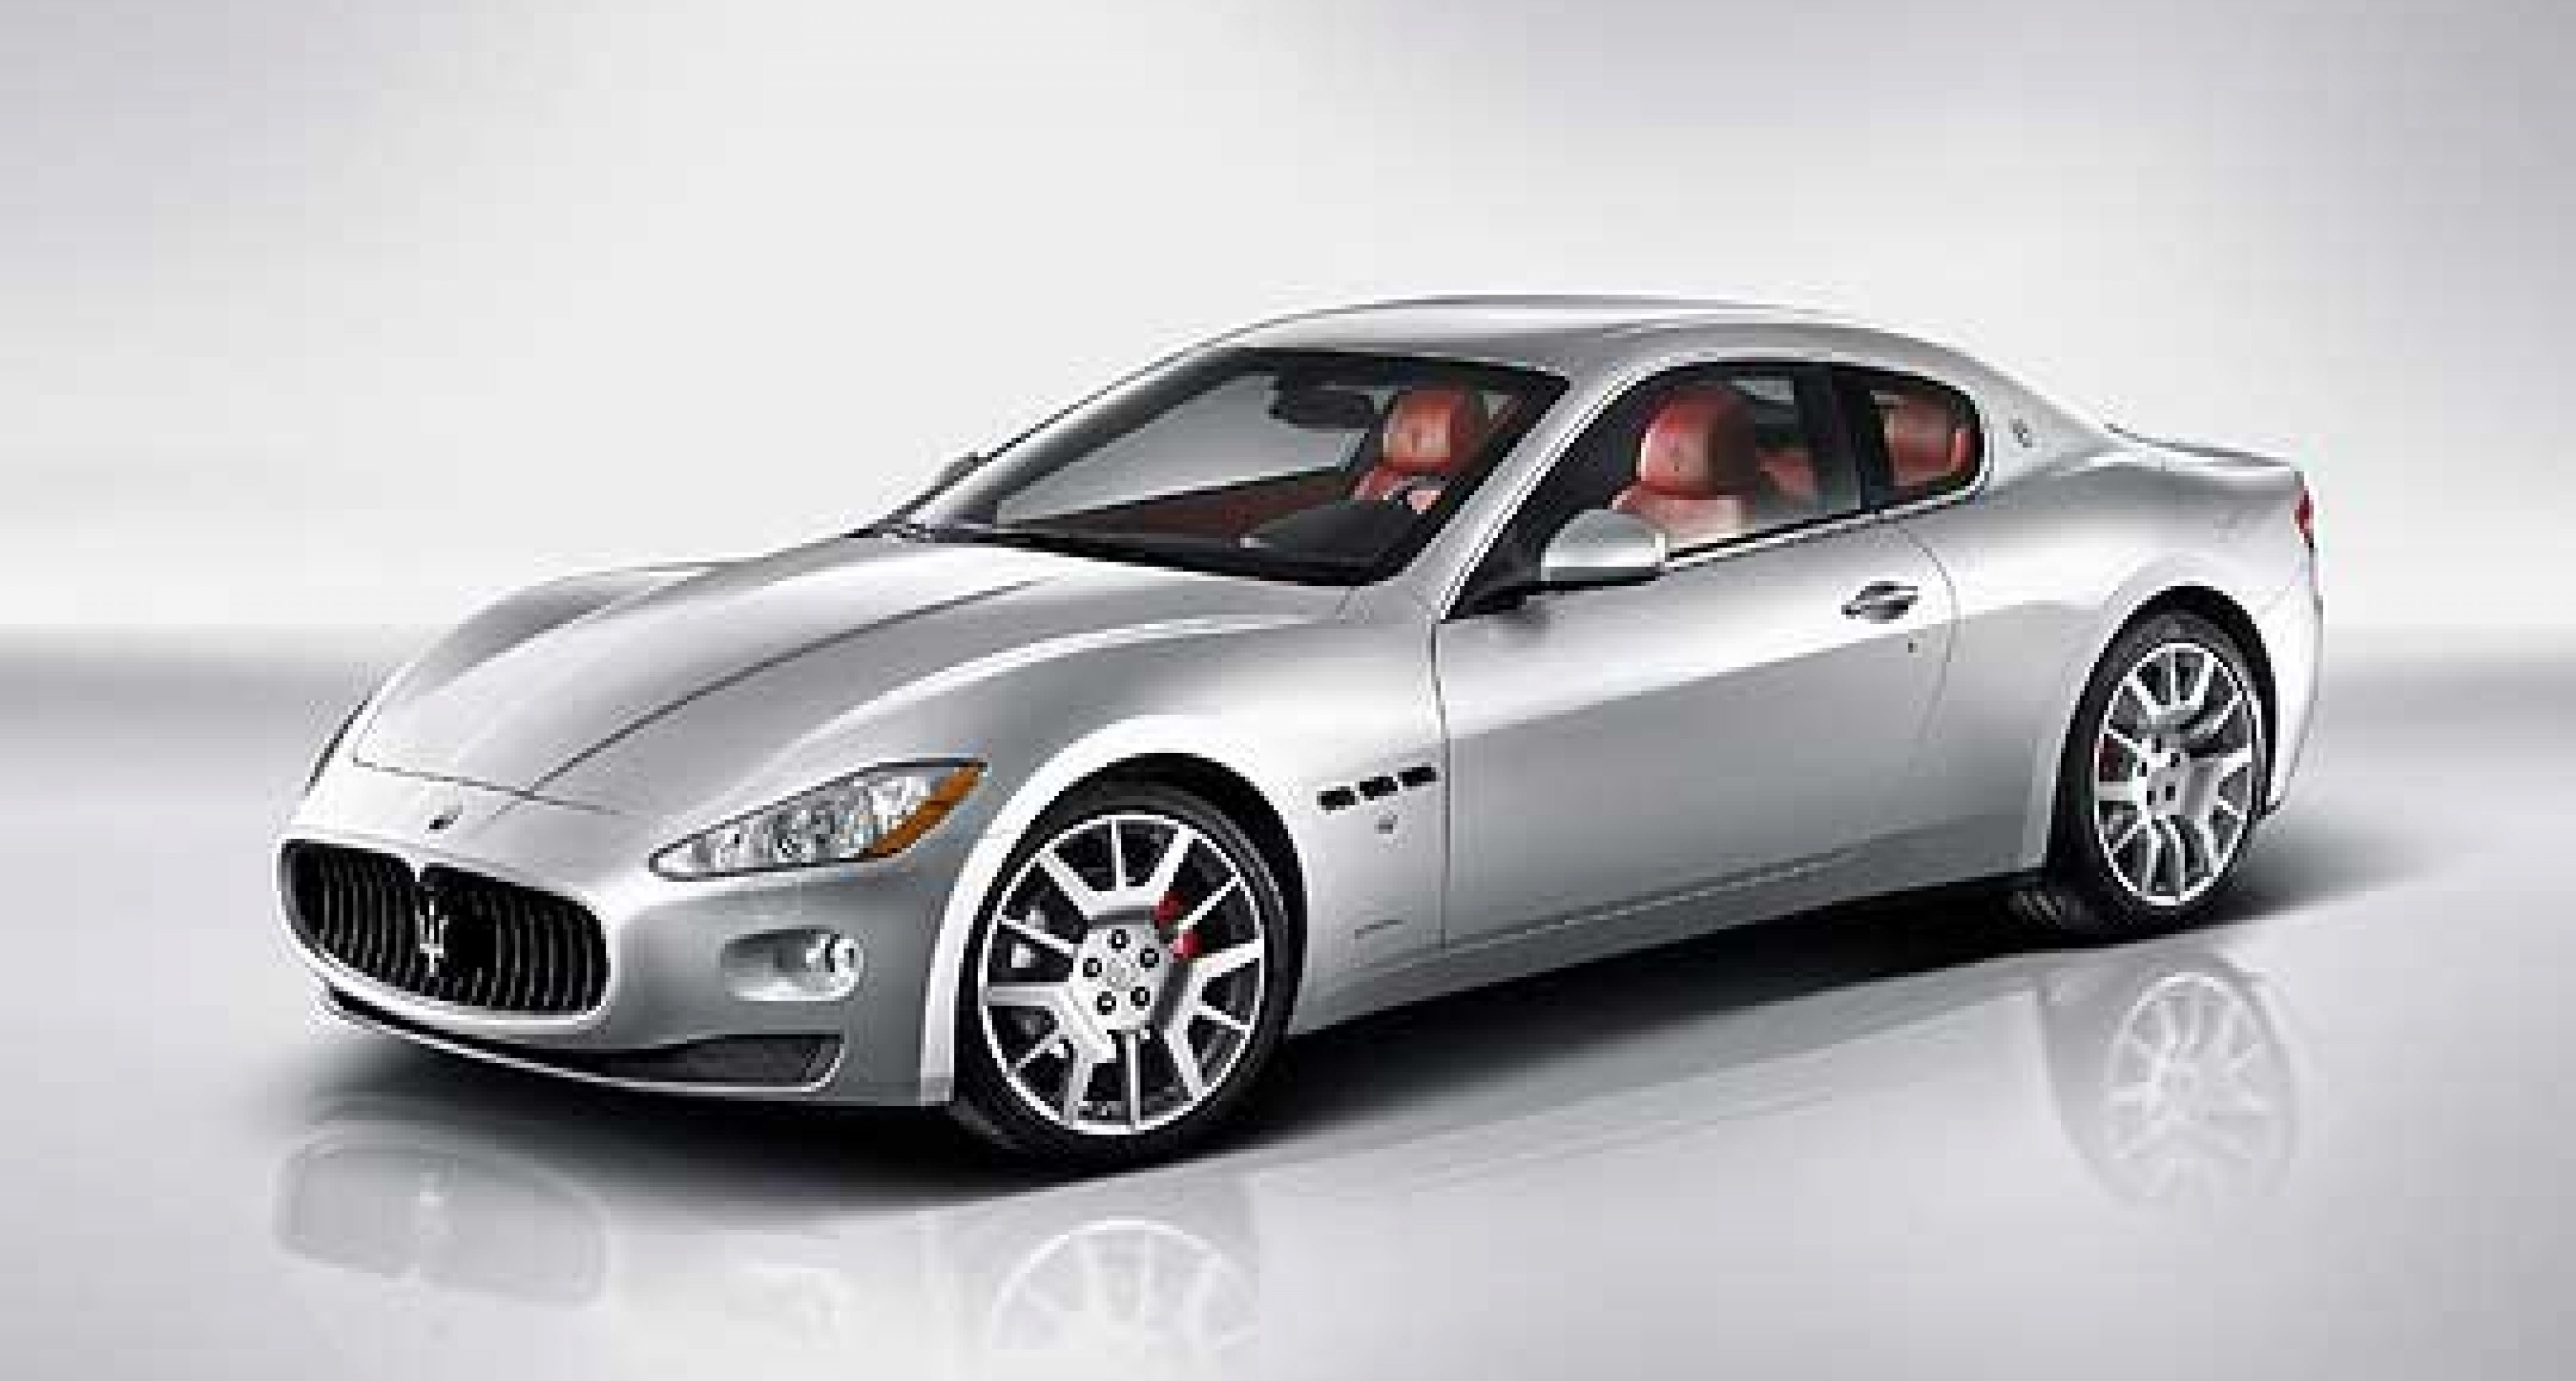 New Maserati Coupé to be Unveiled at Geneva